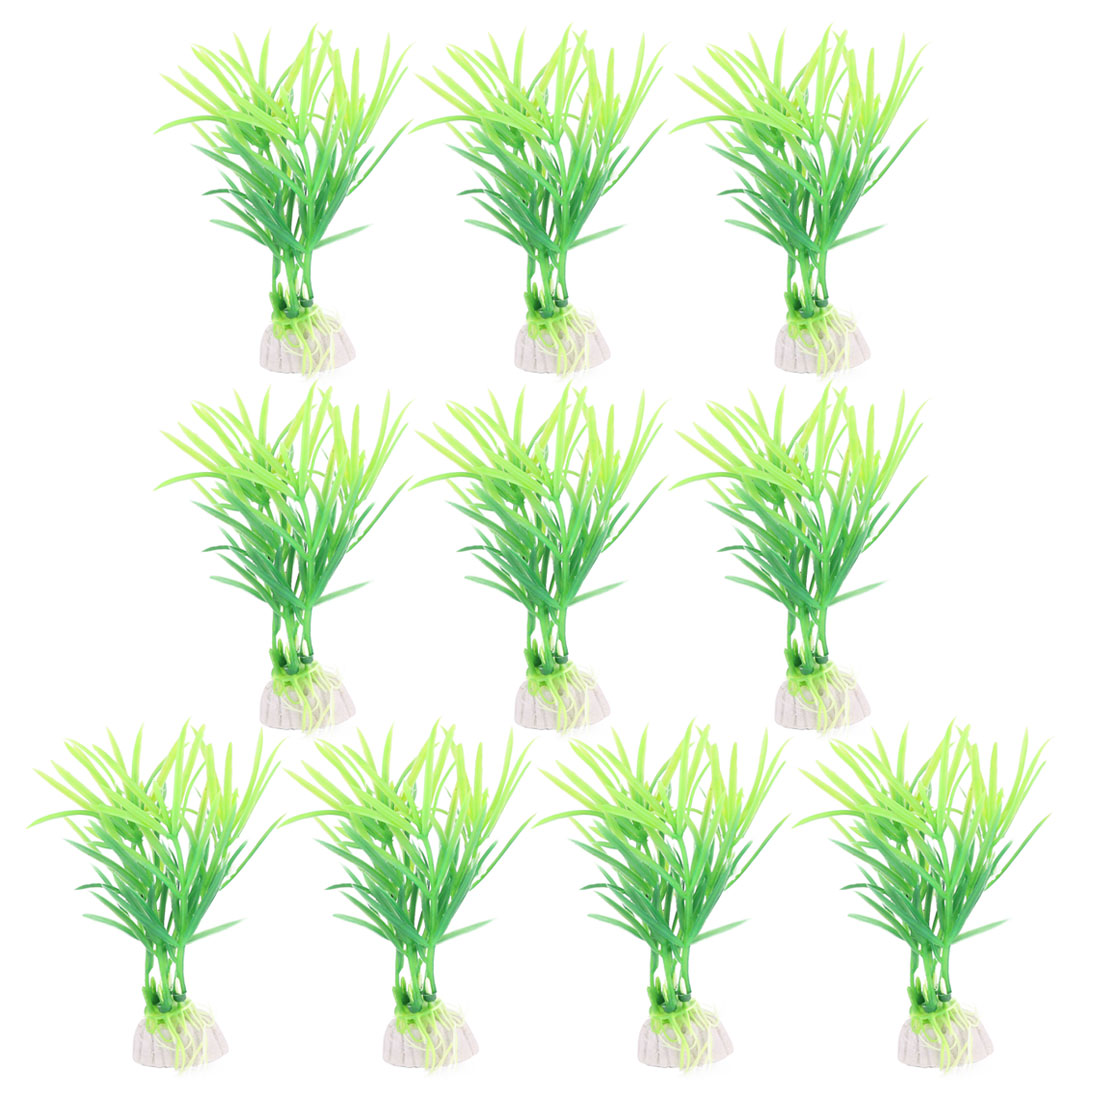 10PCS Plastic Green Aquarium Fish Tank Plant Green